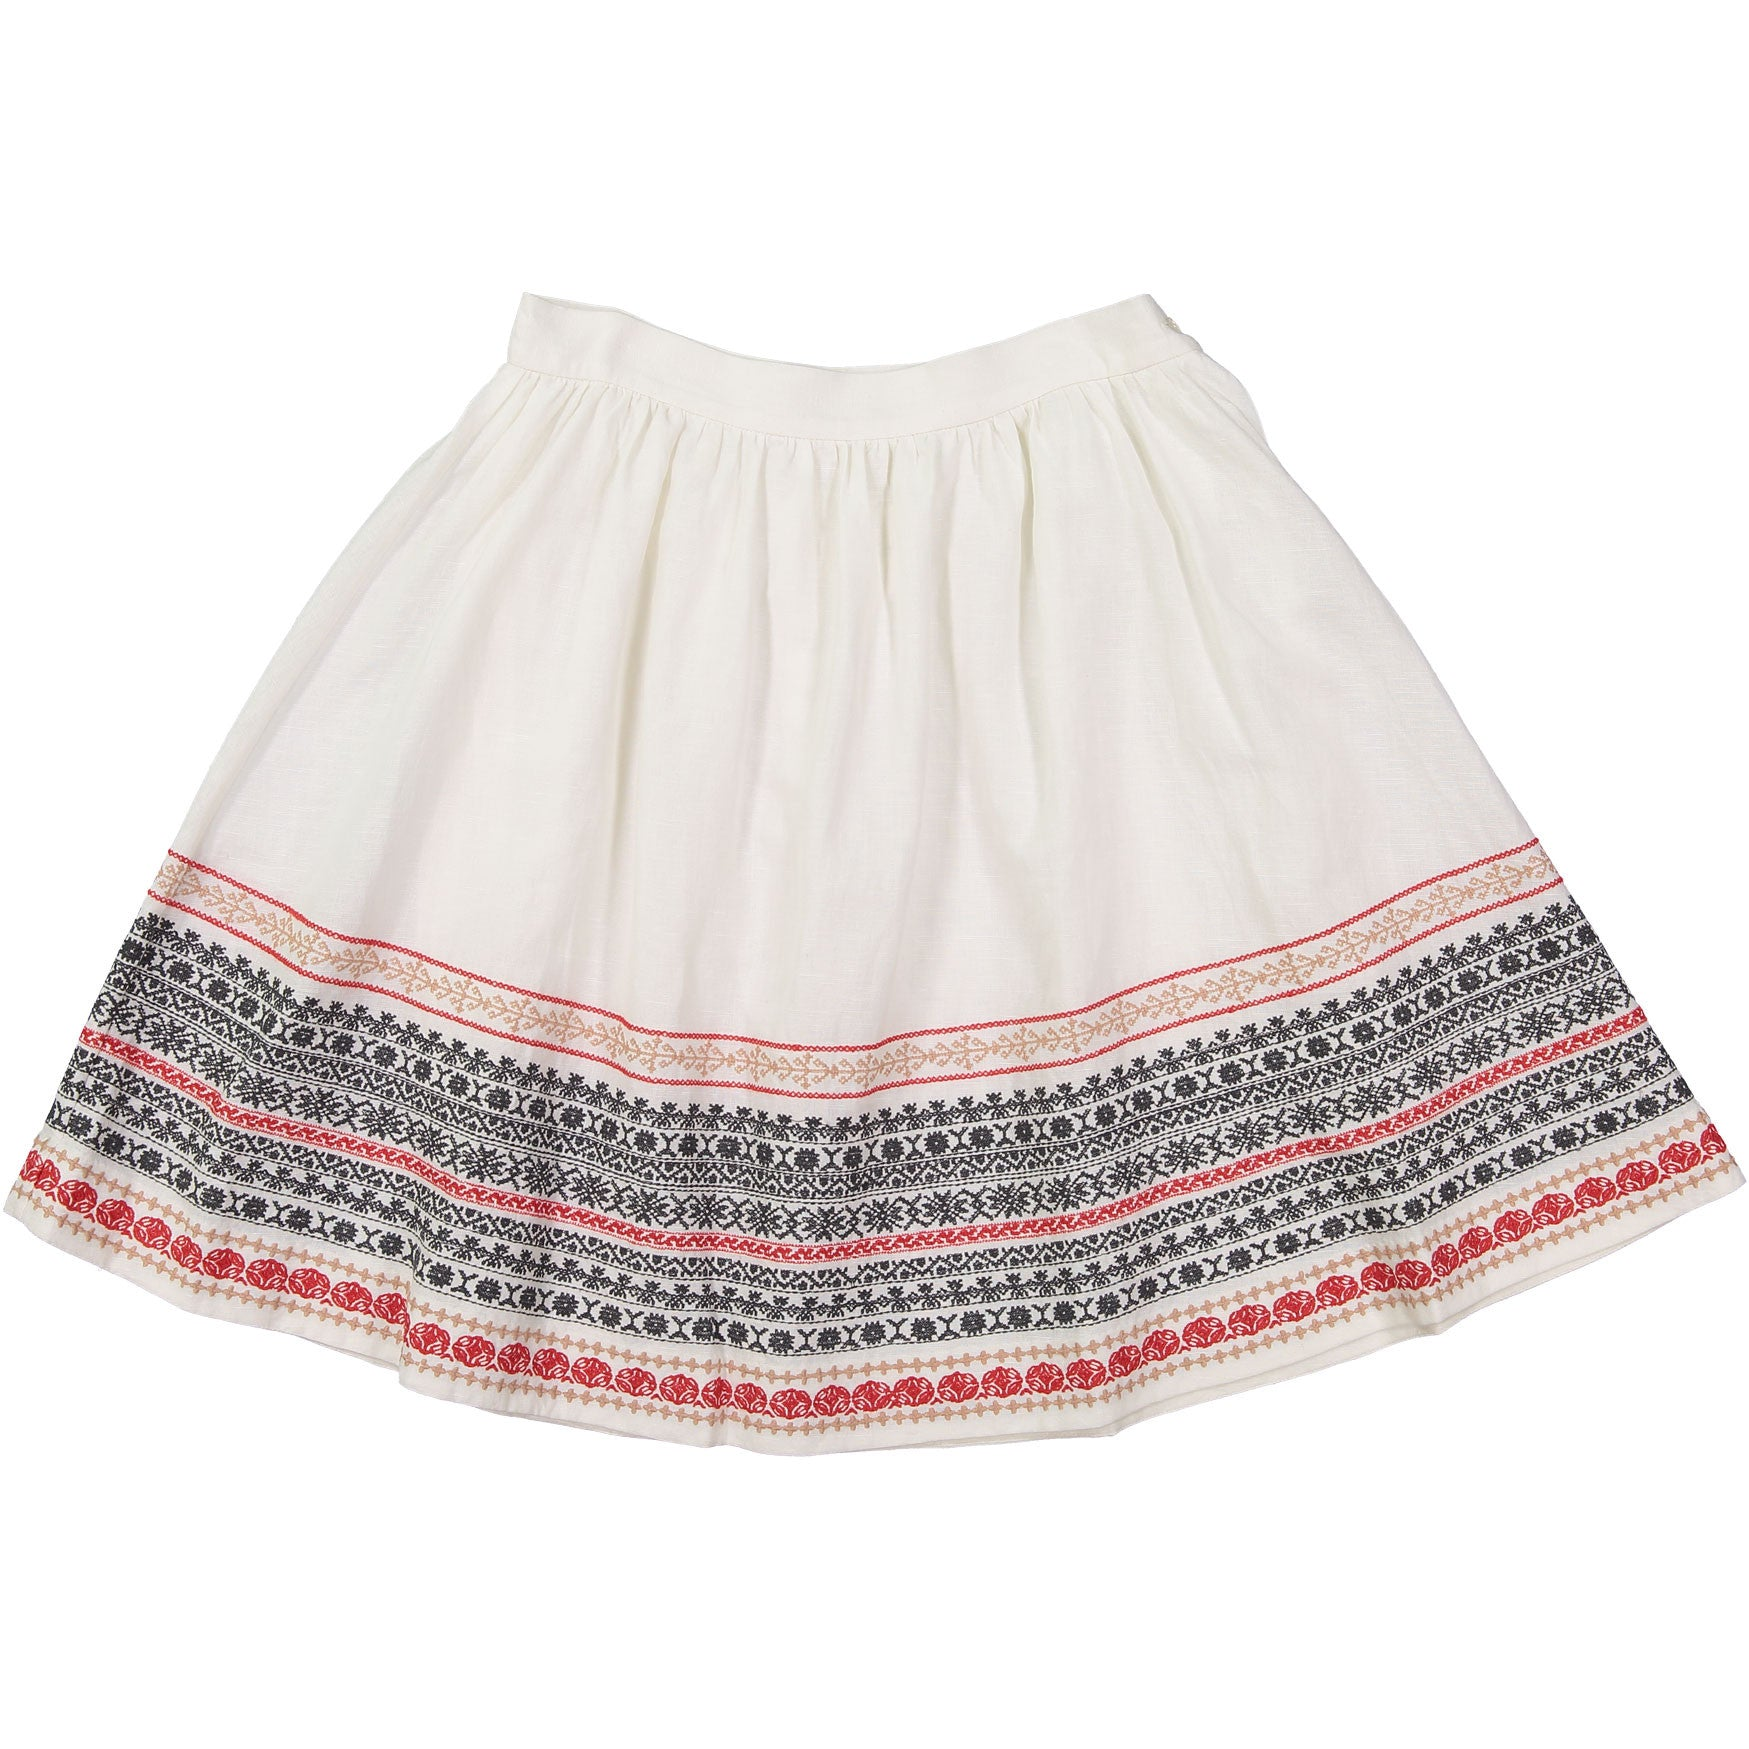 Bonpoint White Embroidered YAM Skirt - Ladida